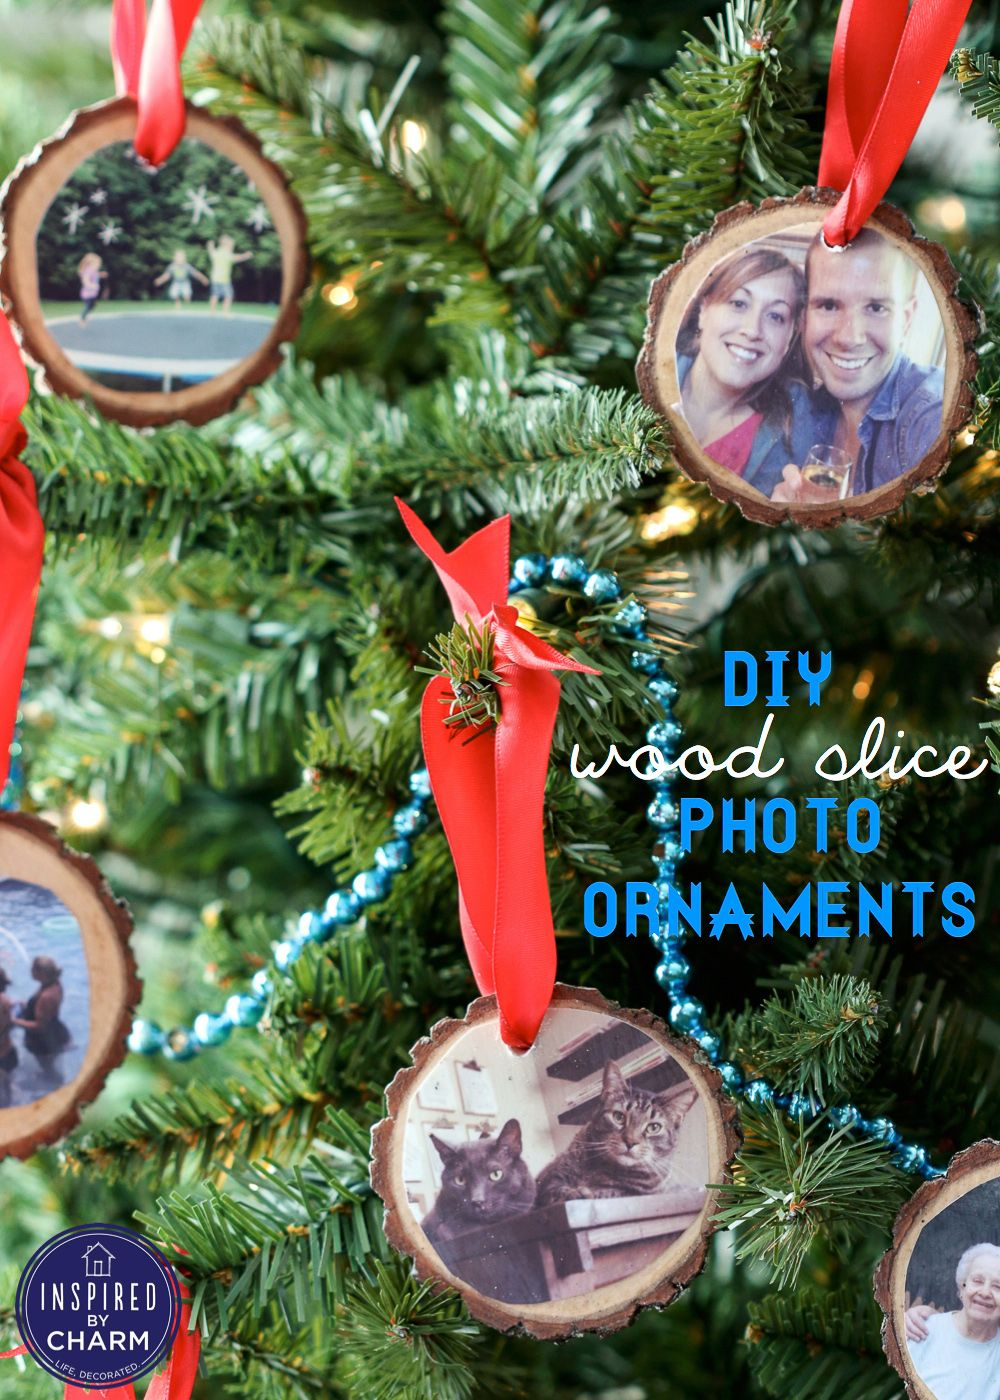 DIY Wood Slice Photo Ornaments, love that they used photos